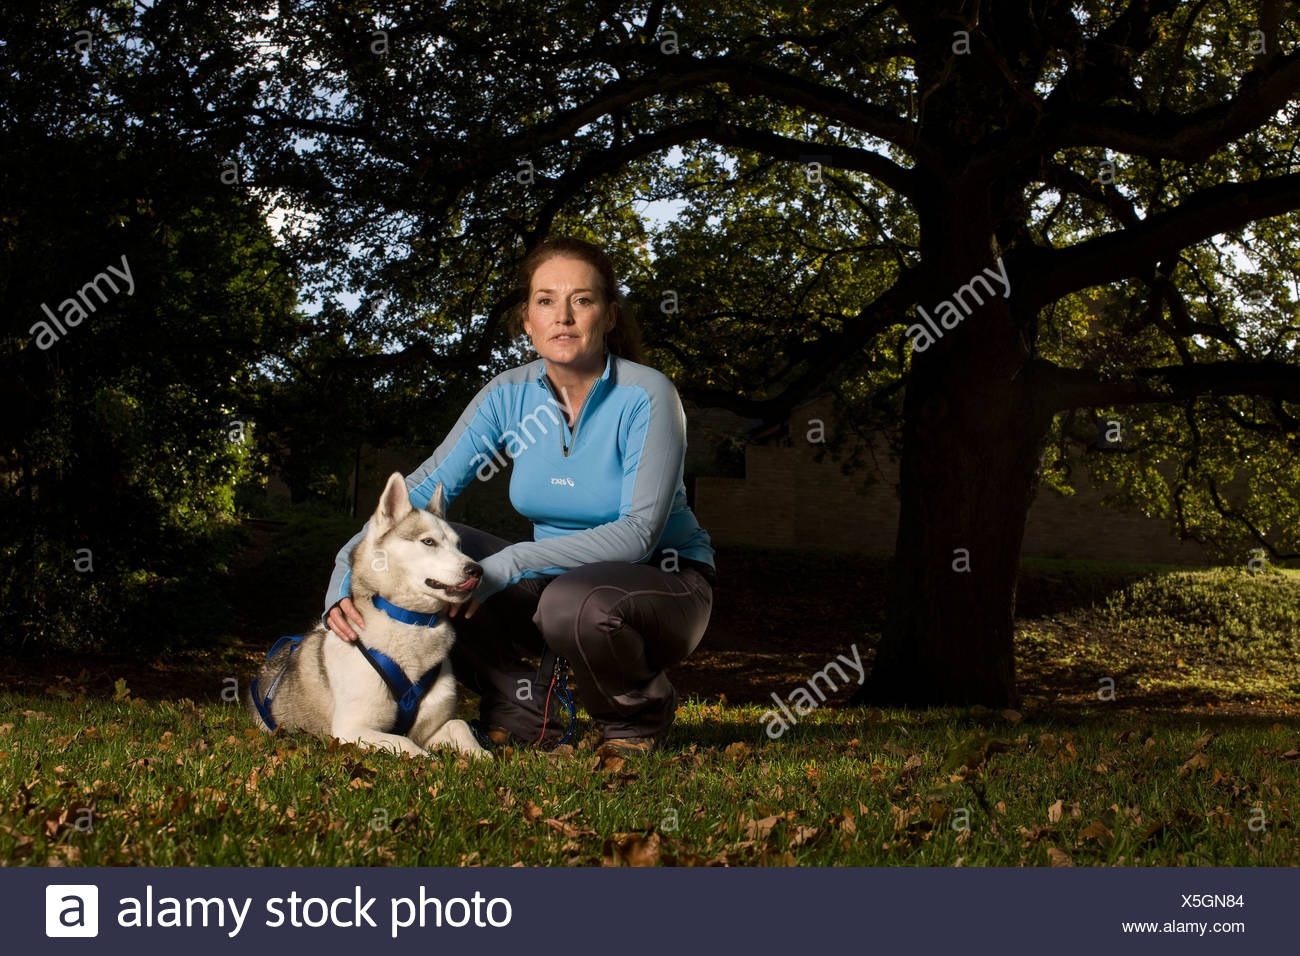 Woman with husky dog in park portrait - Stock Image